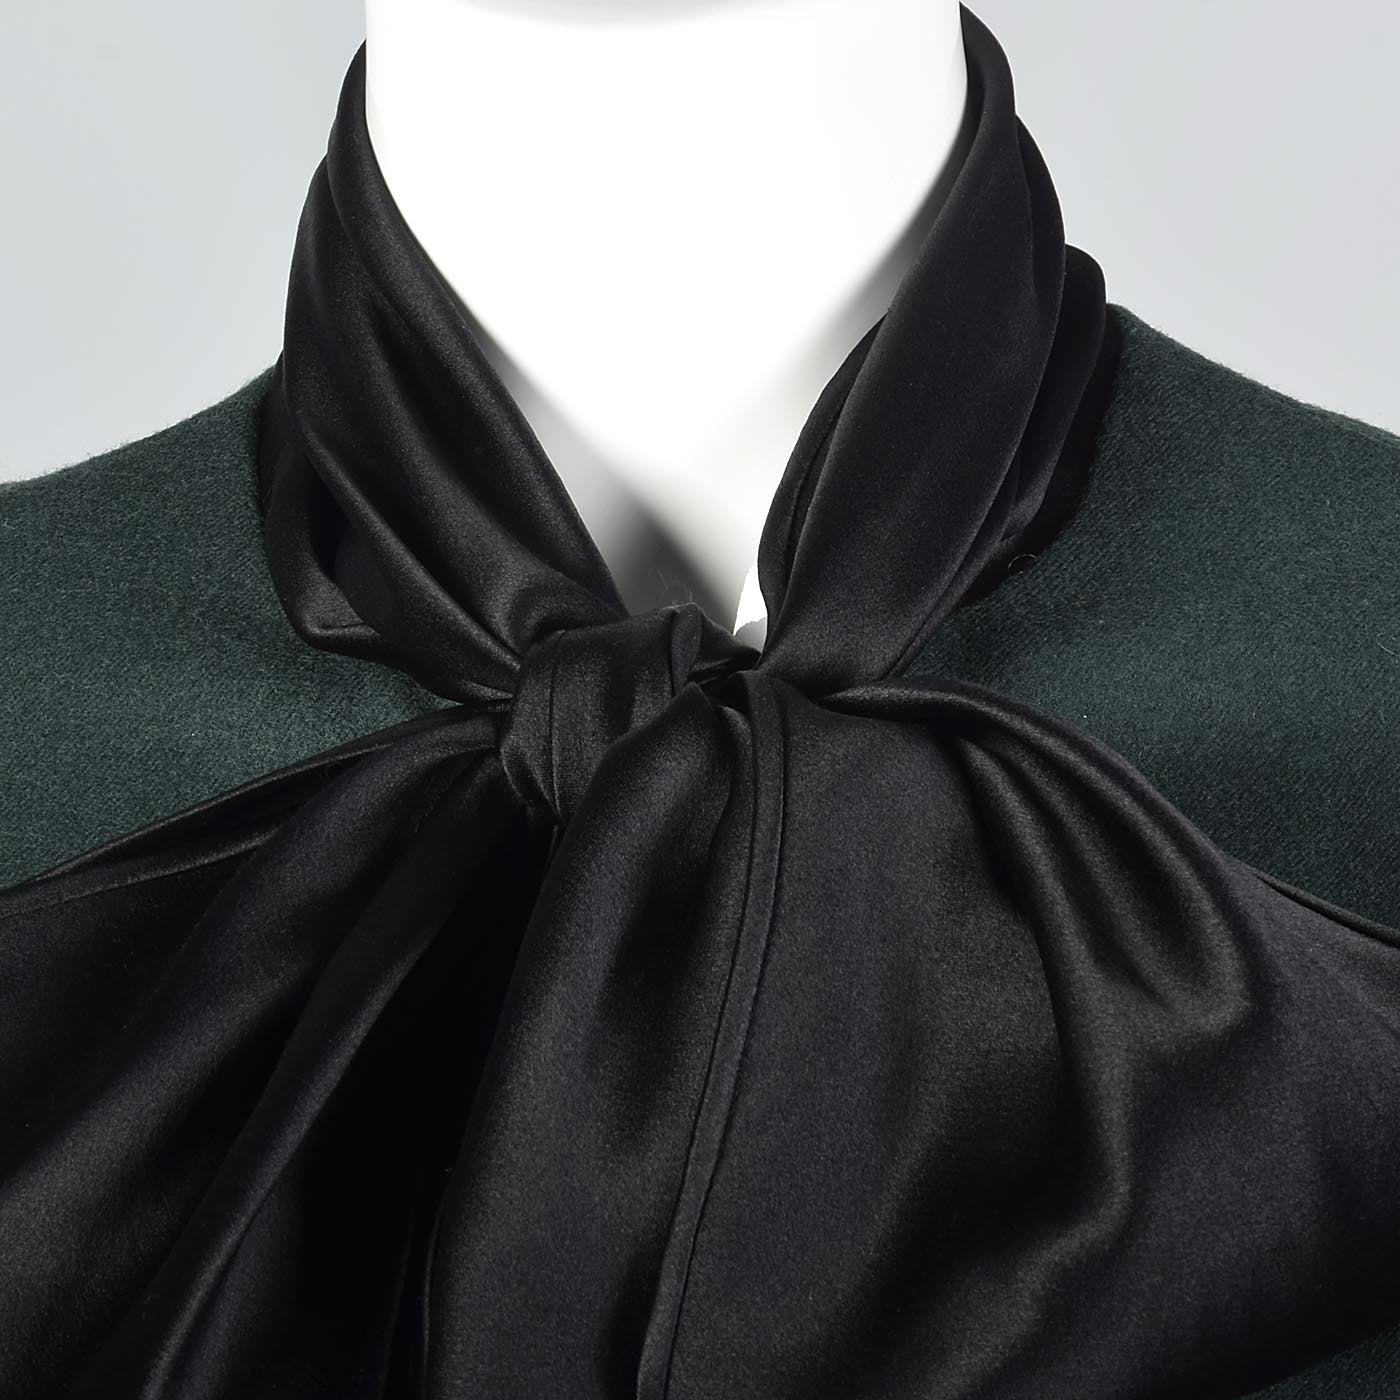 Elegant Galanos Green Wool Dress with Huge Bishop Sleeves